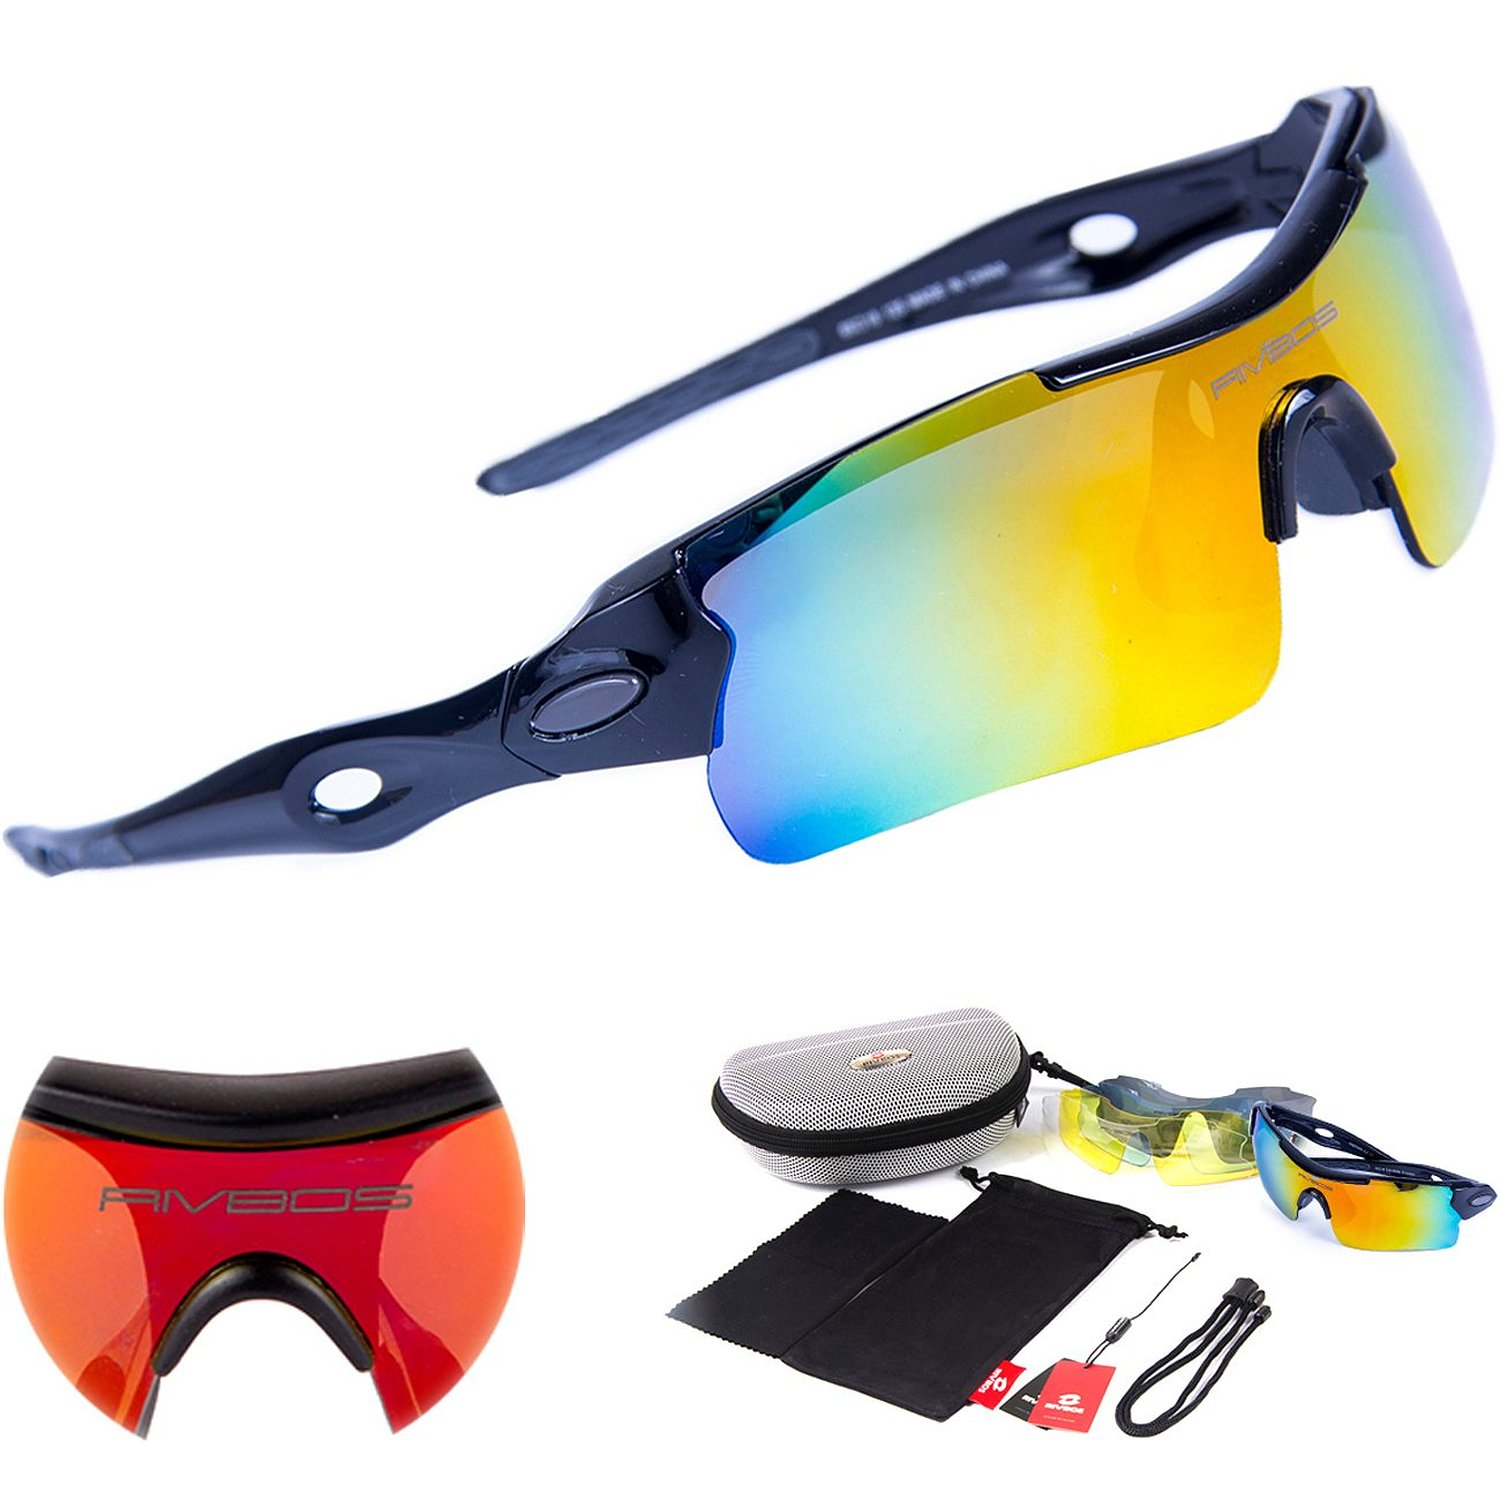 227c4a879a Get Quotations · RIVBOS 305 Polarized Sports Sunglasses Glasses with 5  Interchangeable Lens (Black)